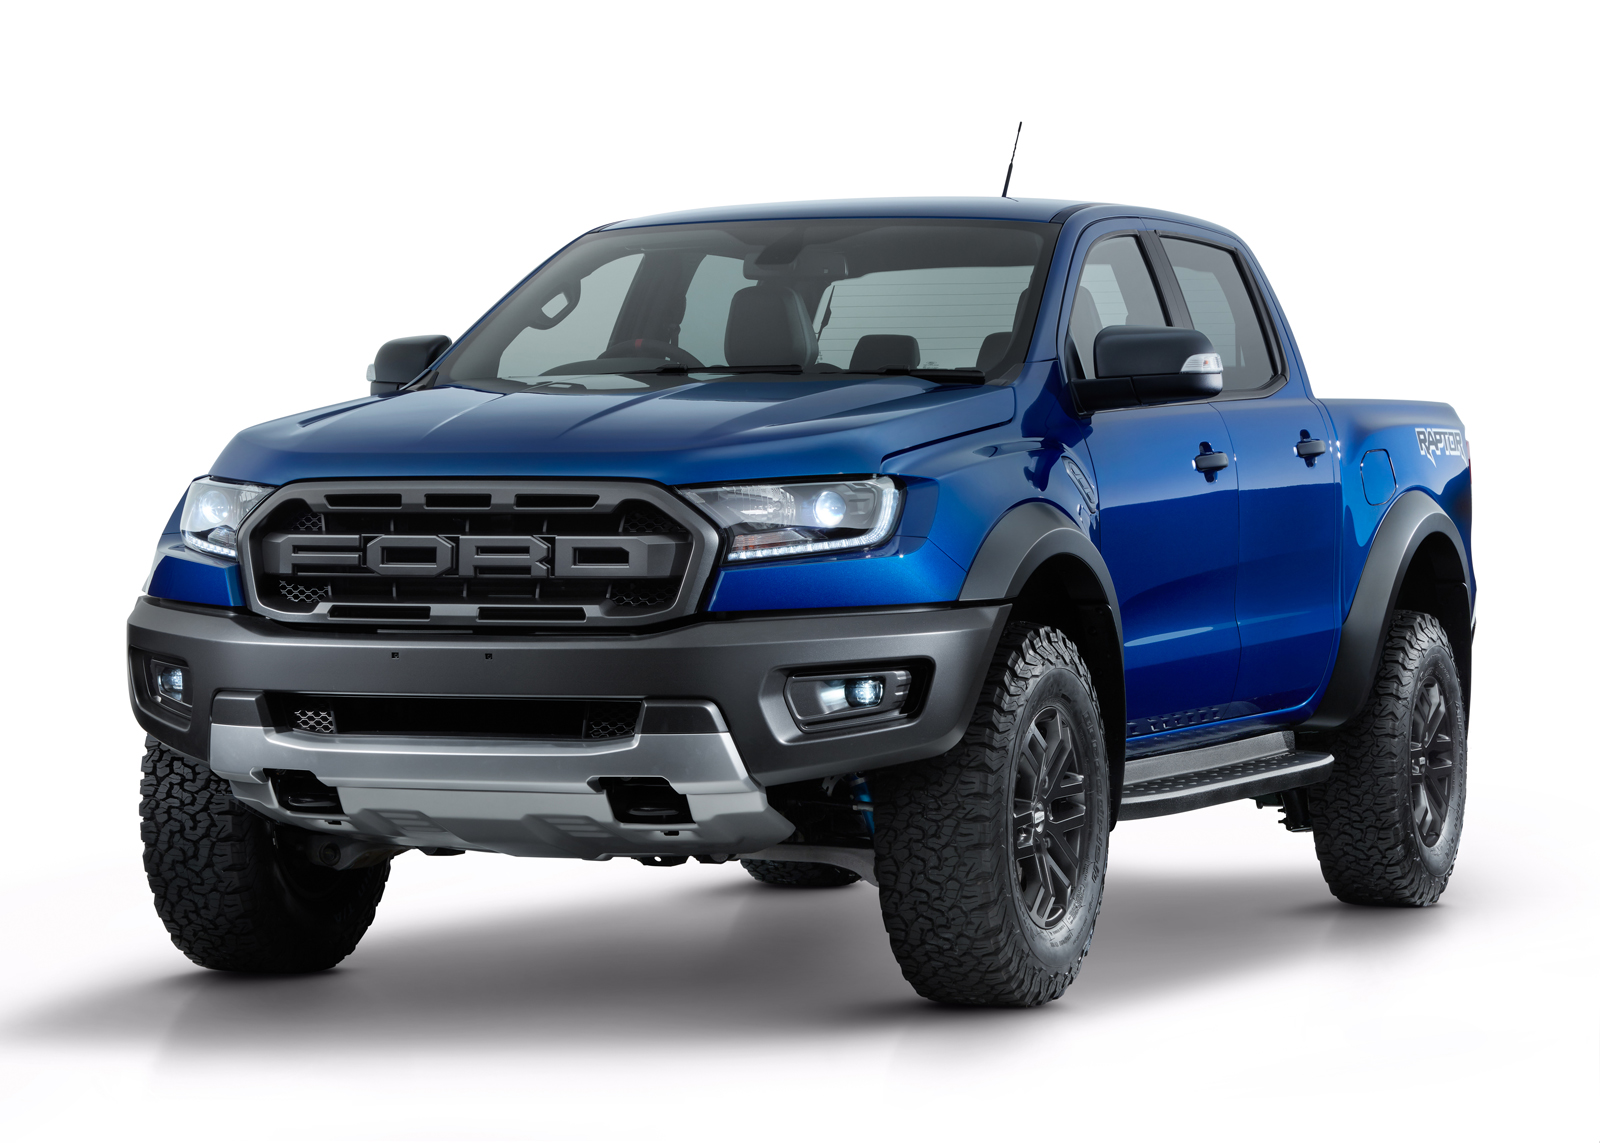 ford ranger raptor could arrive in us with gas engine powerstrokenation ford powerstroke. Black Bedroom Furniture Sets. Home Design Ideas